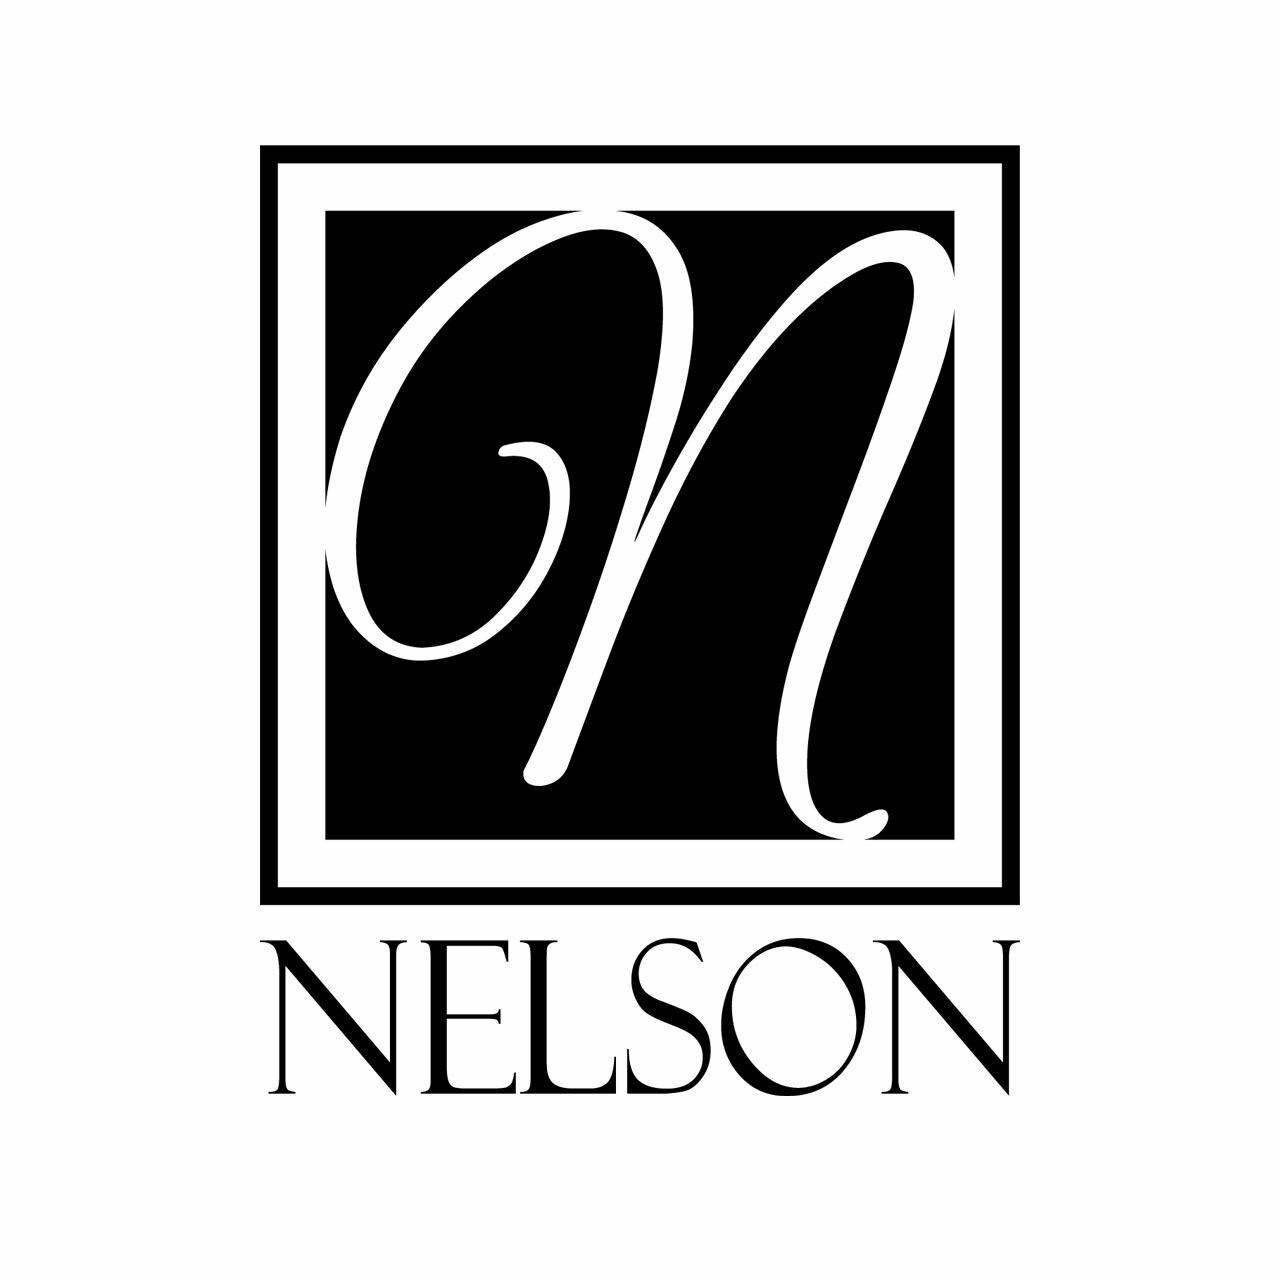 Single letter monogram in a square with the letter N centered over the last name NELSON in black on a white background